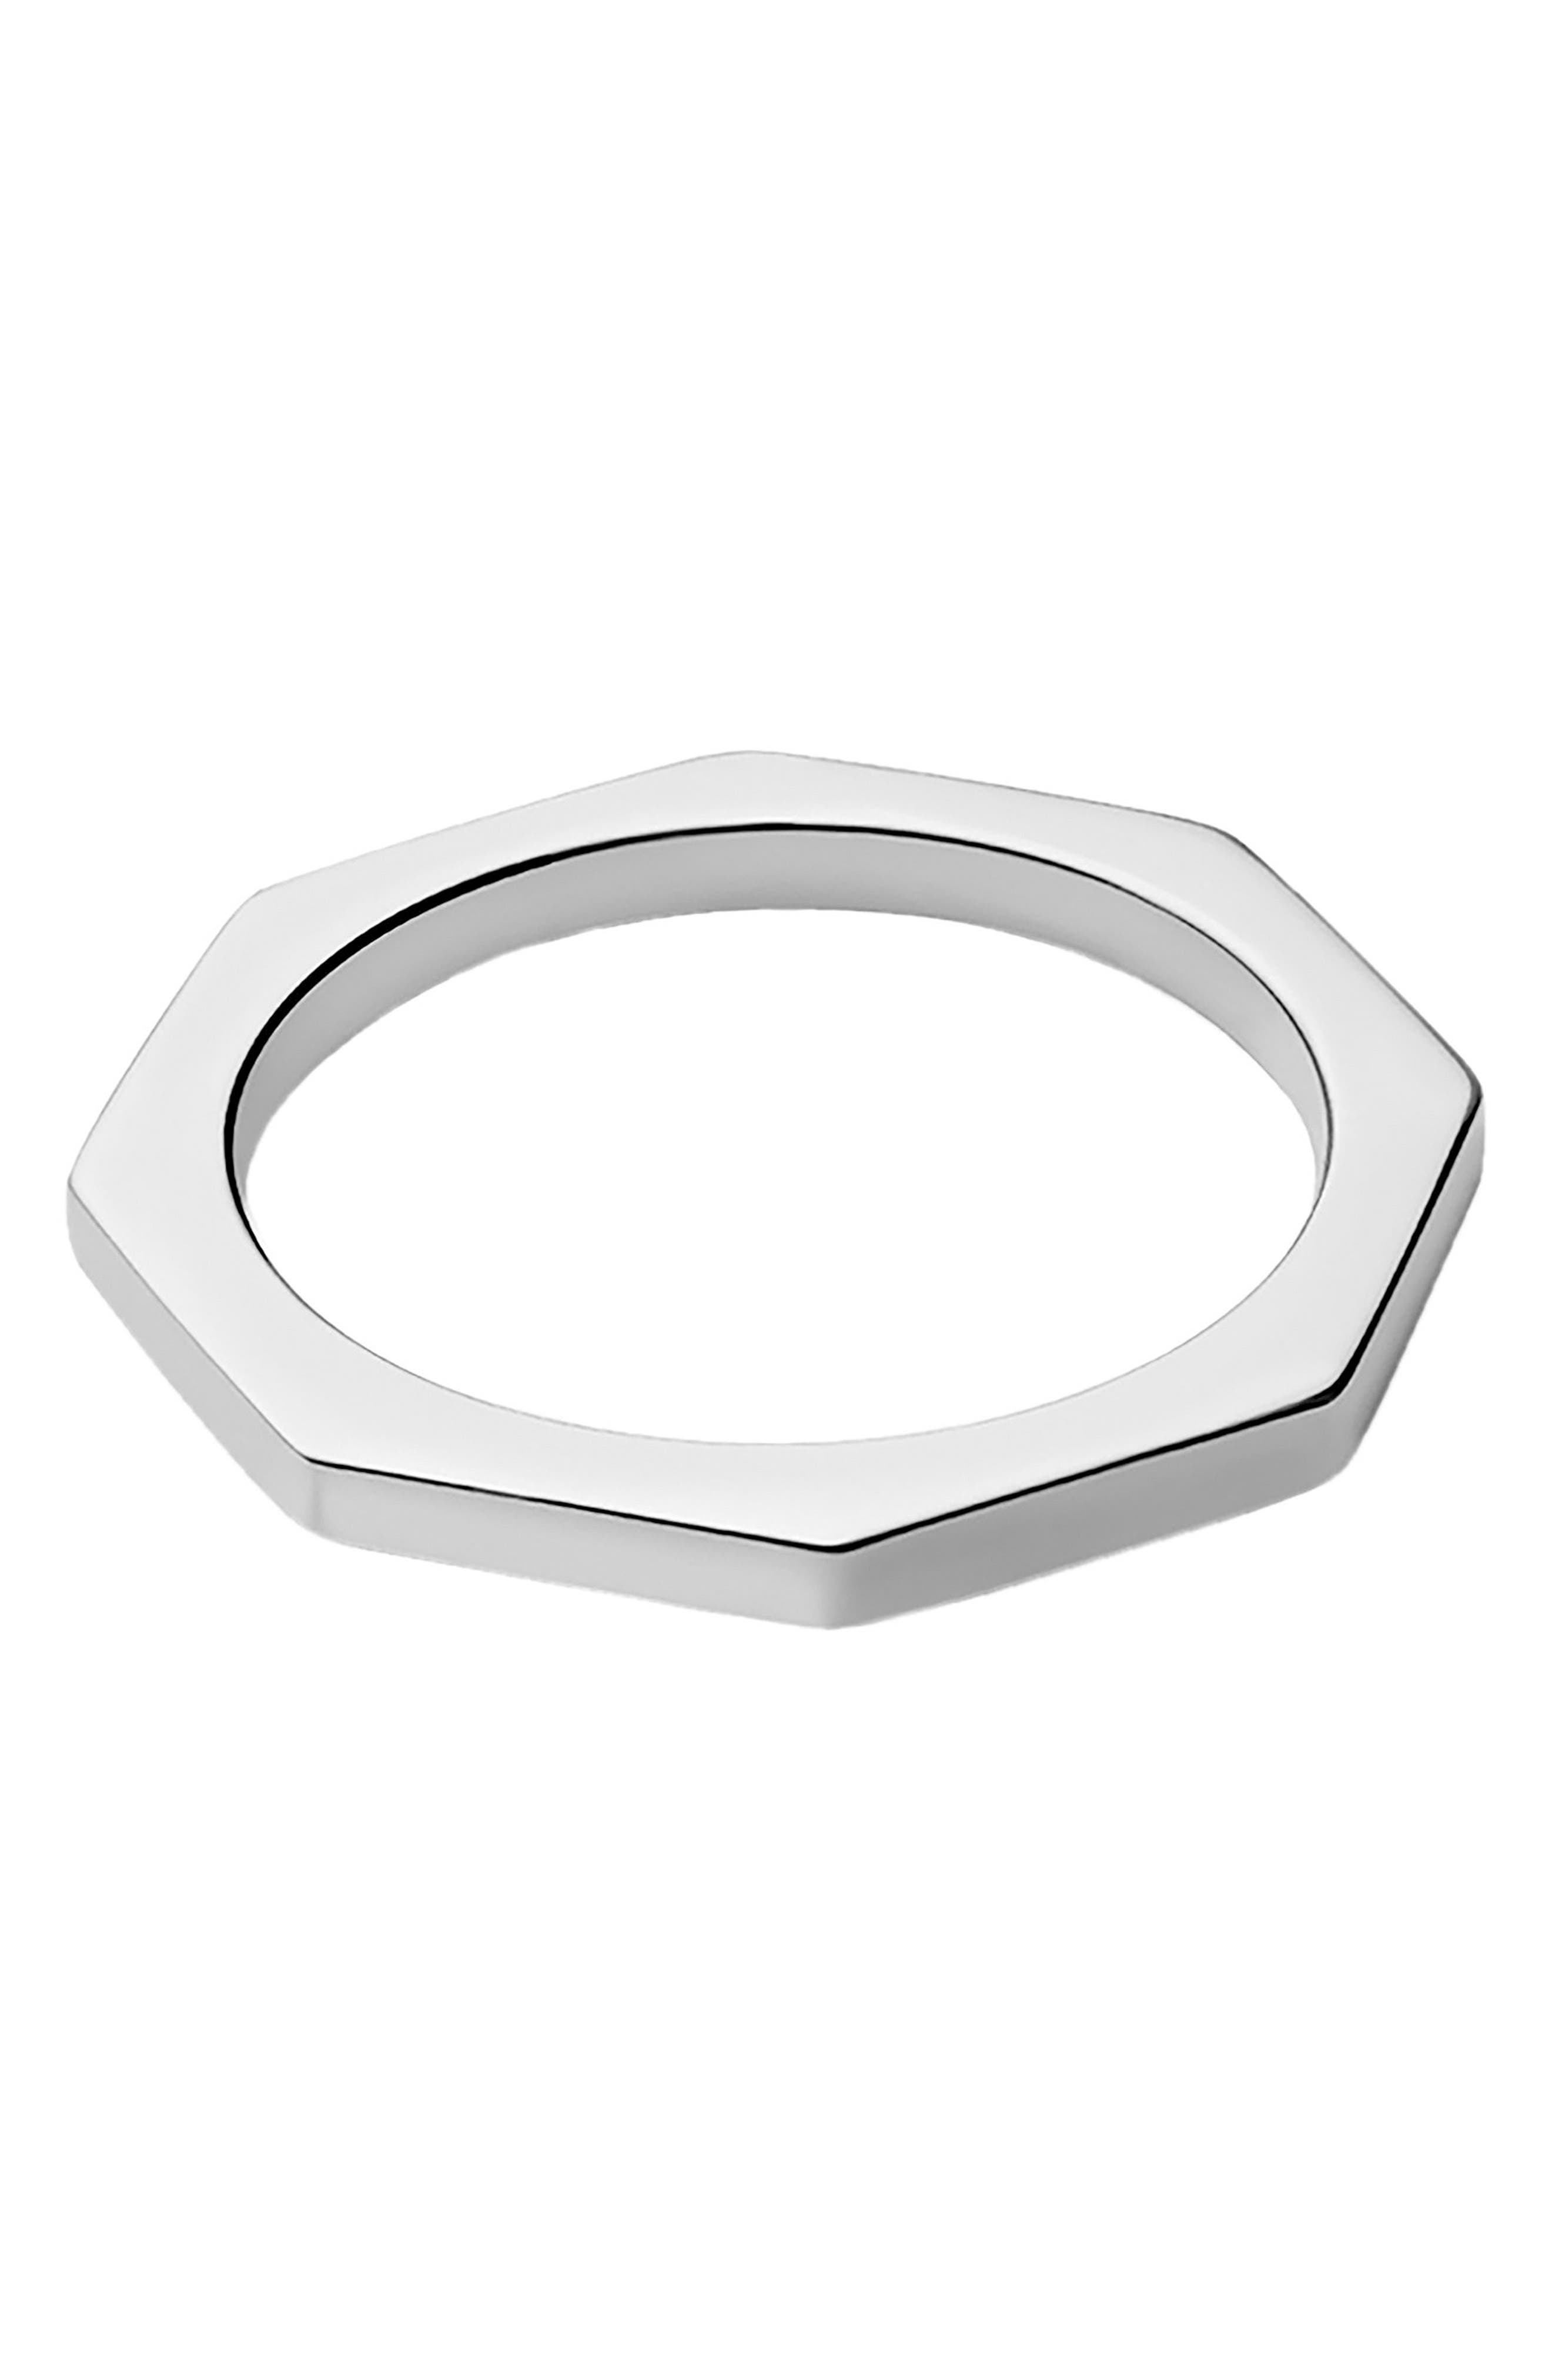 Bly Ring,                             Main thumbnail 1, color,                             STERLING SILVER